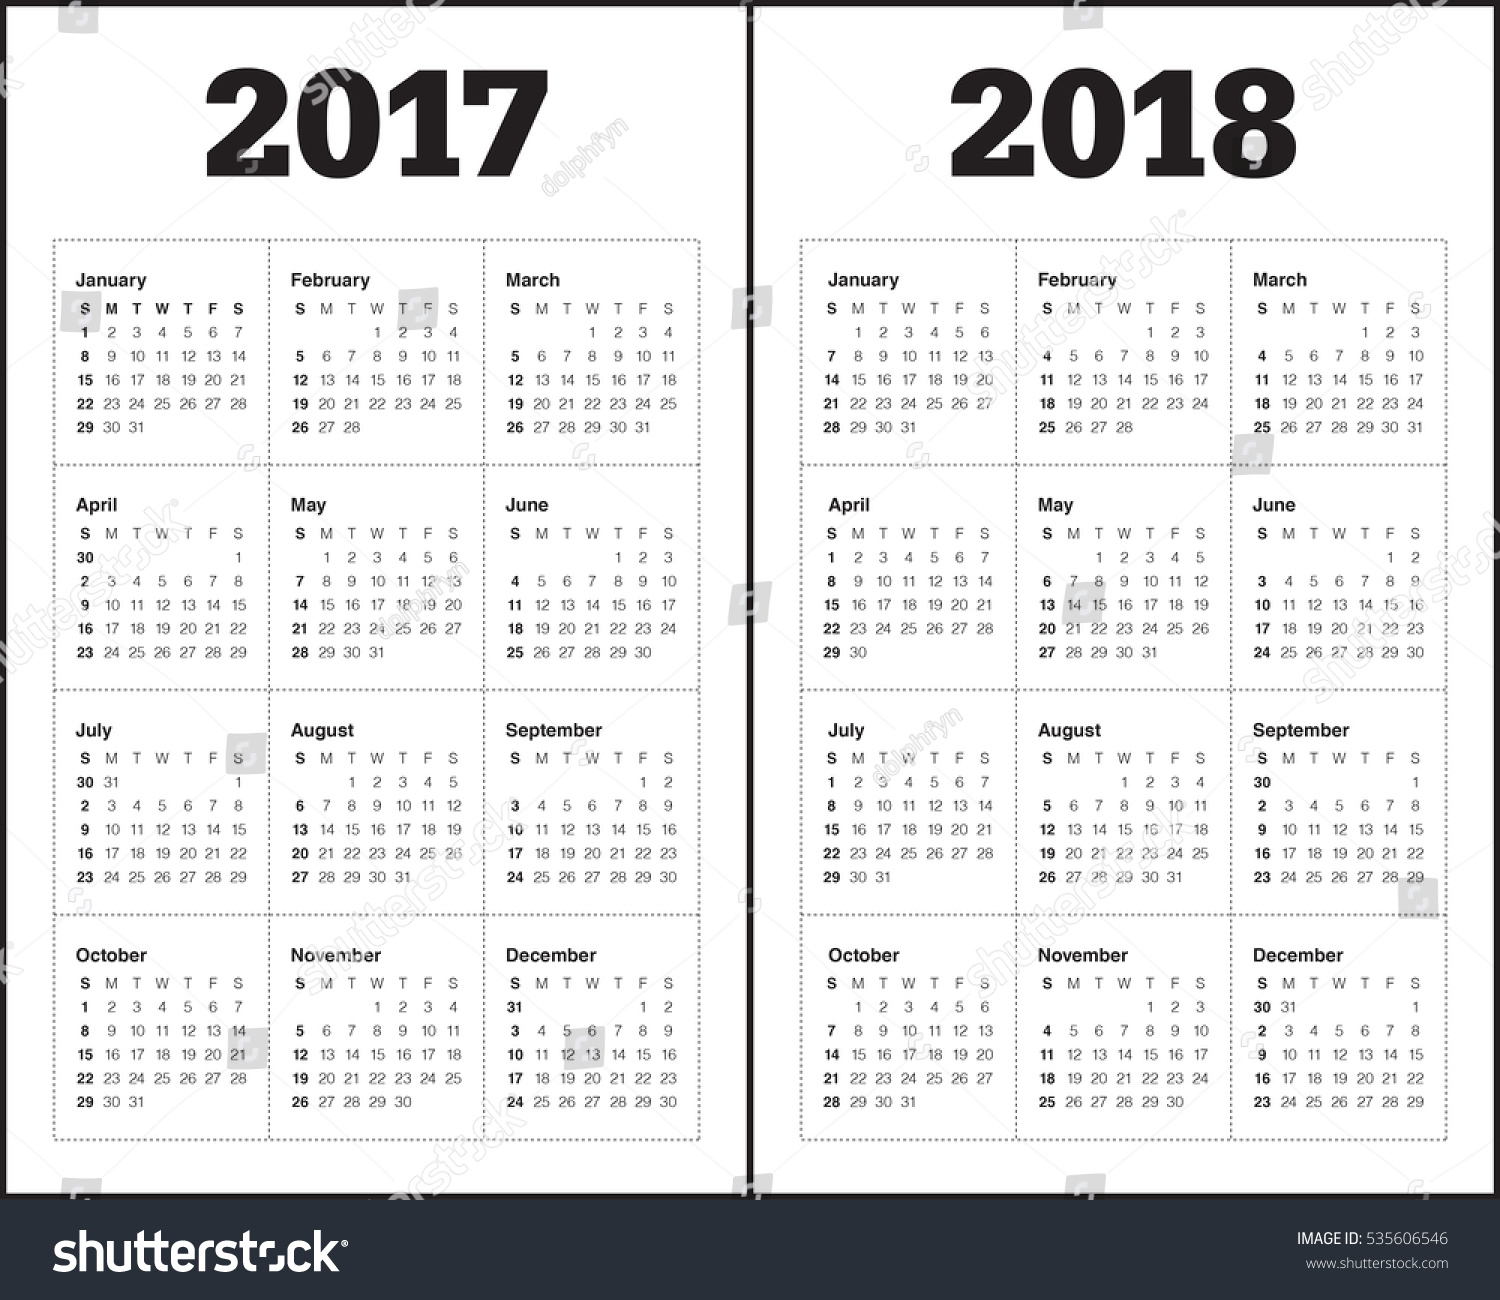 Cool 1 Year Experienced Java Resume Small 10 Best Resume Tips Rectangular 12 Tab Divider Template 1and1 Templates Young 1st Birthday Invite Templates White2014 June Calendar Template Simple Calendar Template Year 2017 Year Stock Vector 535606546 ..